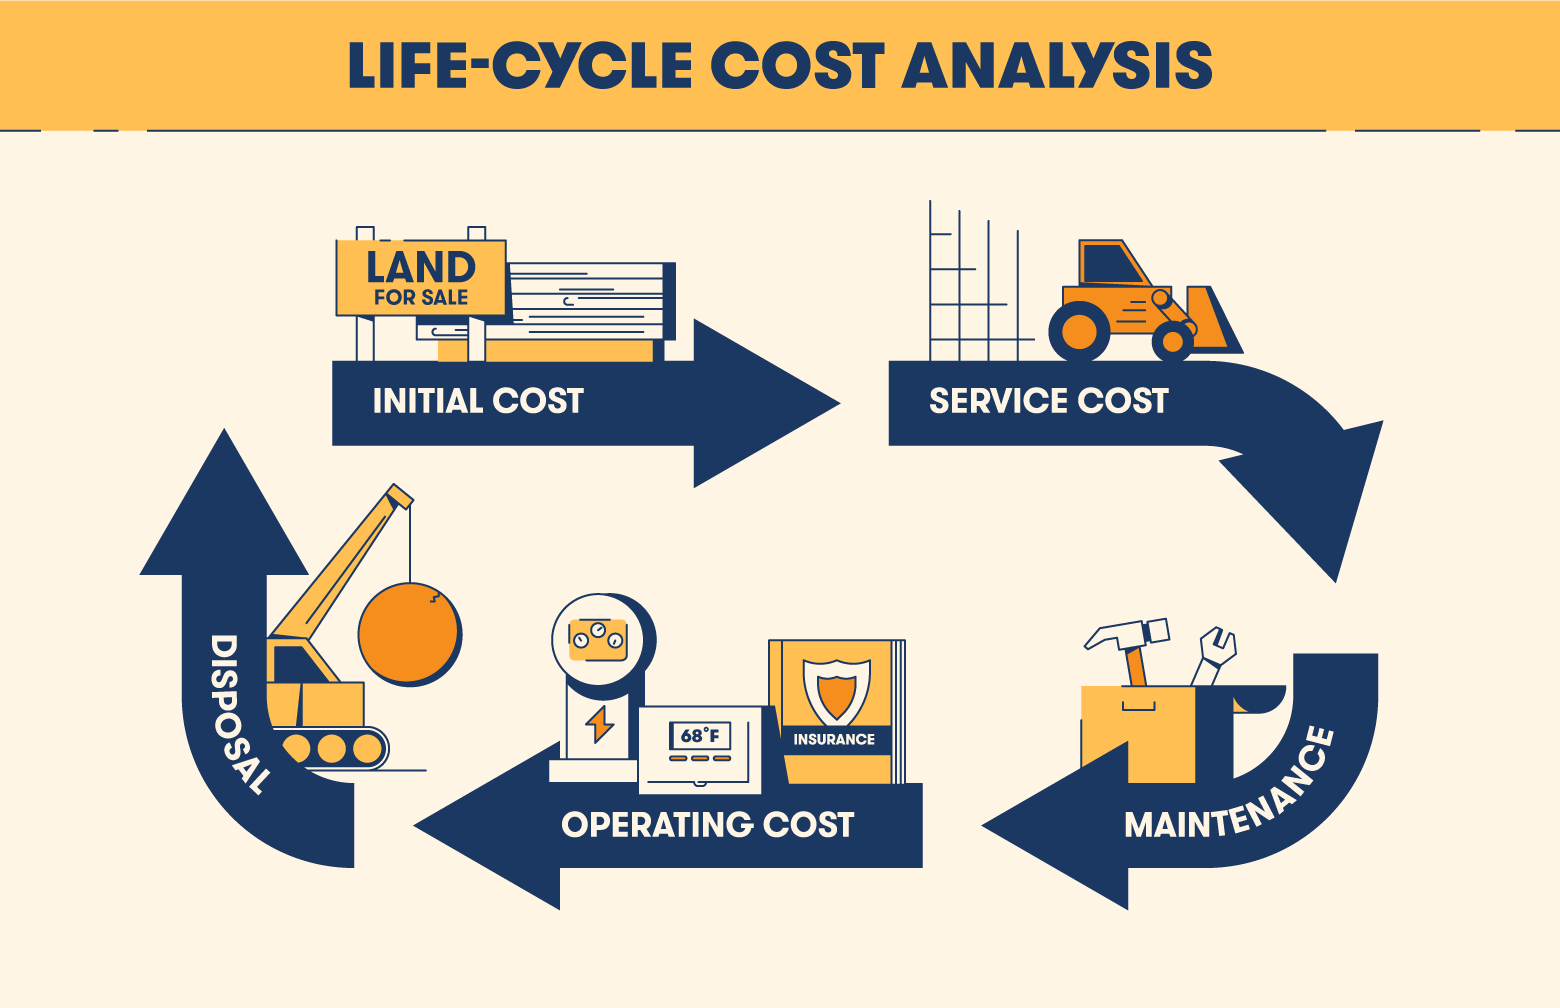 life cycle cost analysis flowchart with construction illustrations